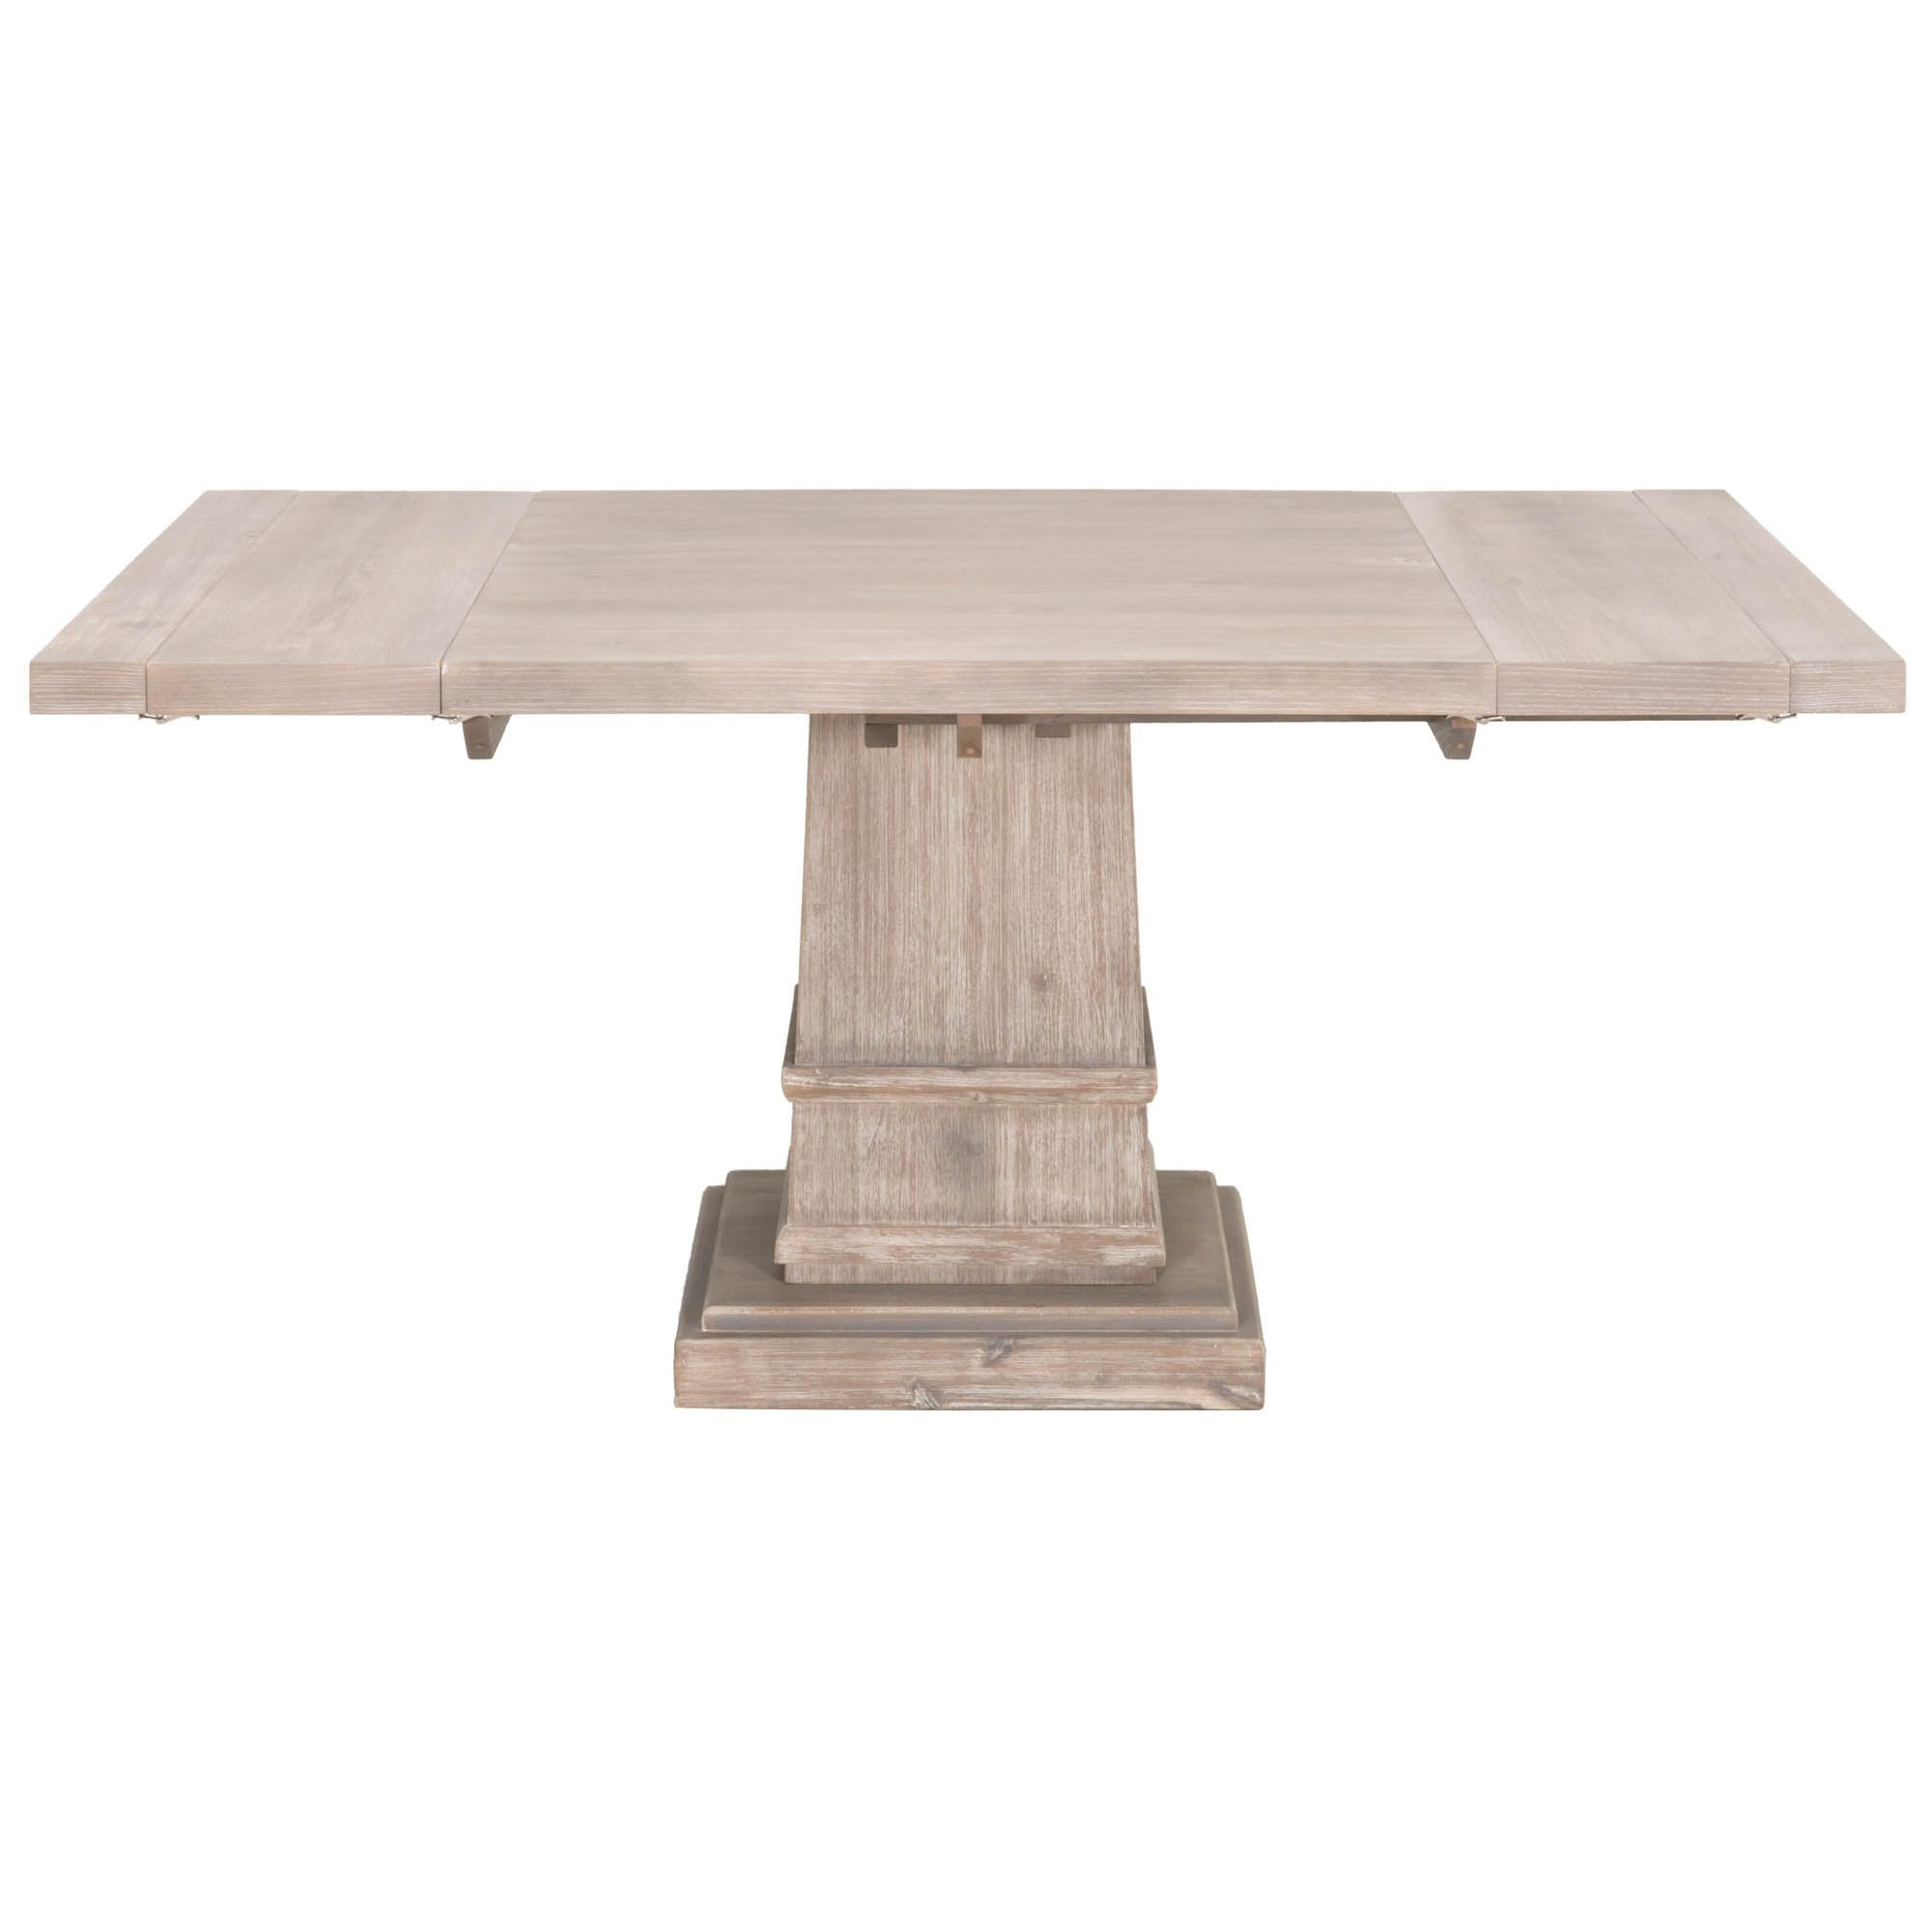 "Hudson 44"" Square Extension Dining Table in Natural Gray"